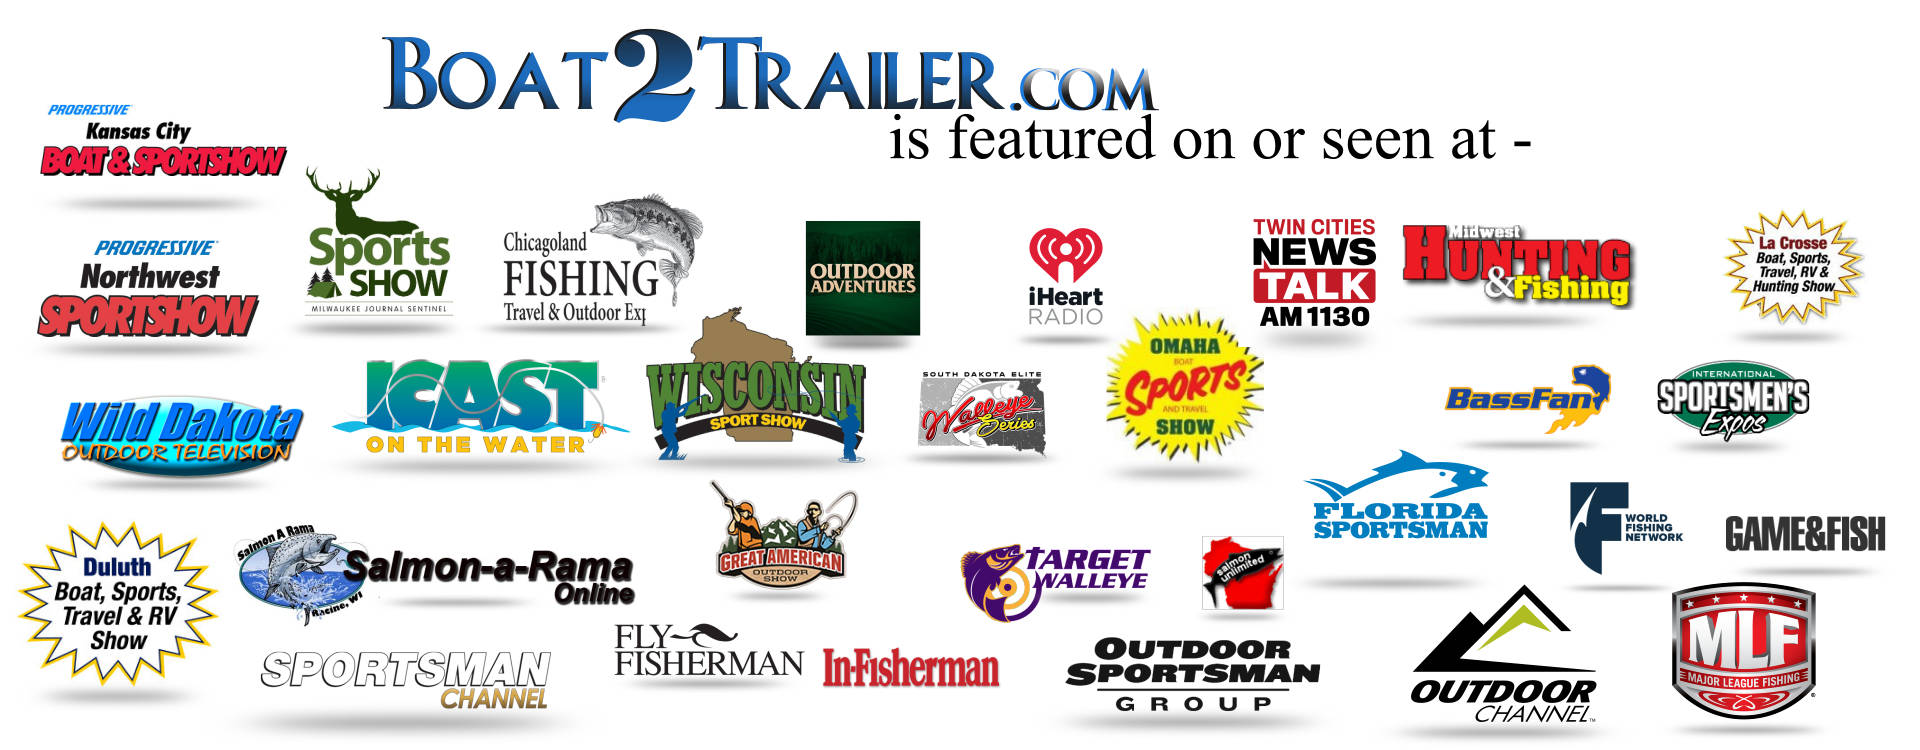 Boat2Trailer featured On